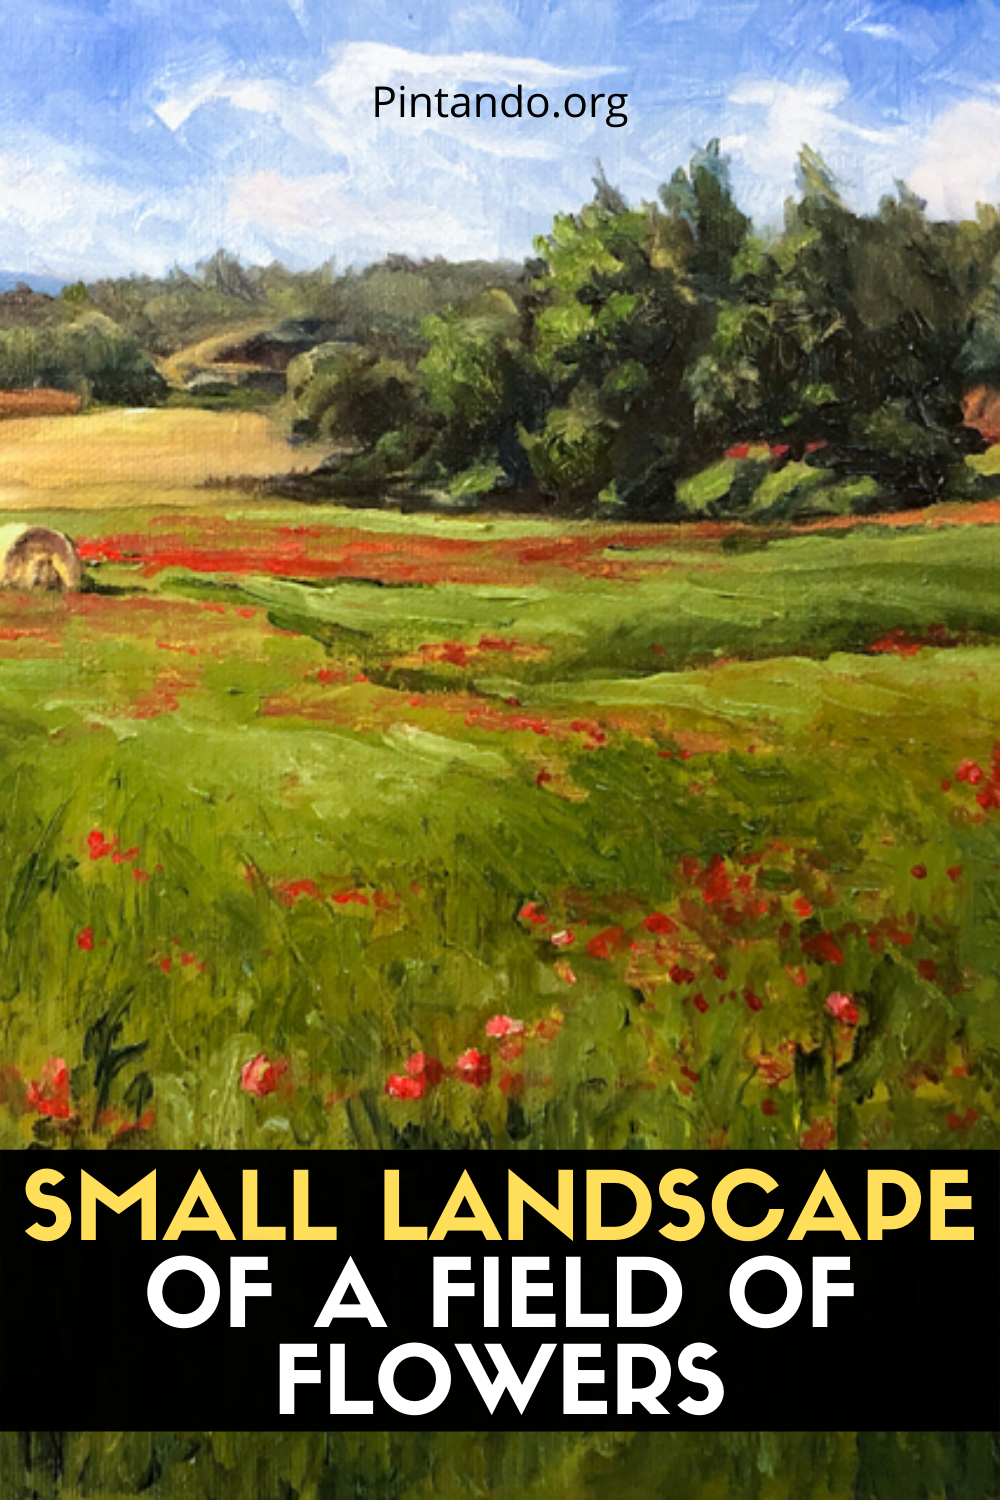 SMALL LANDSCAPE OF A FIELD OF FLOWERS